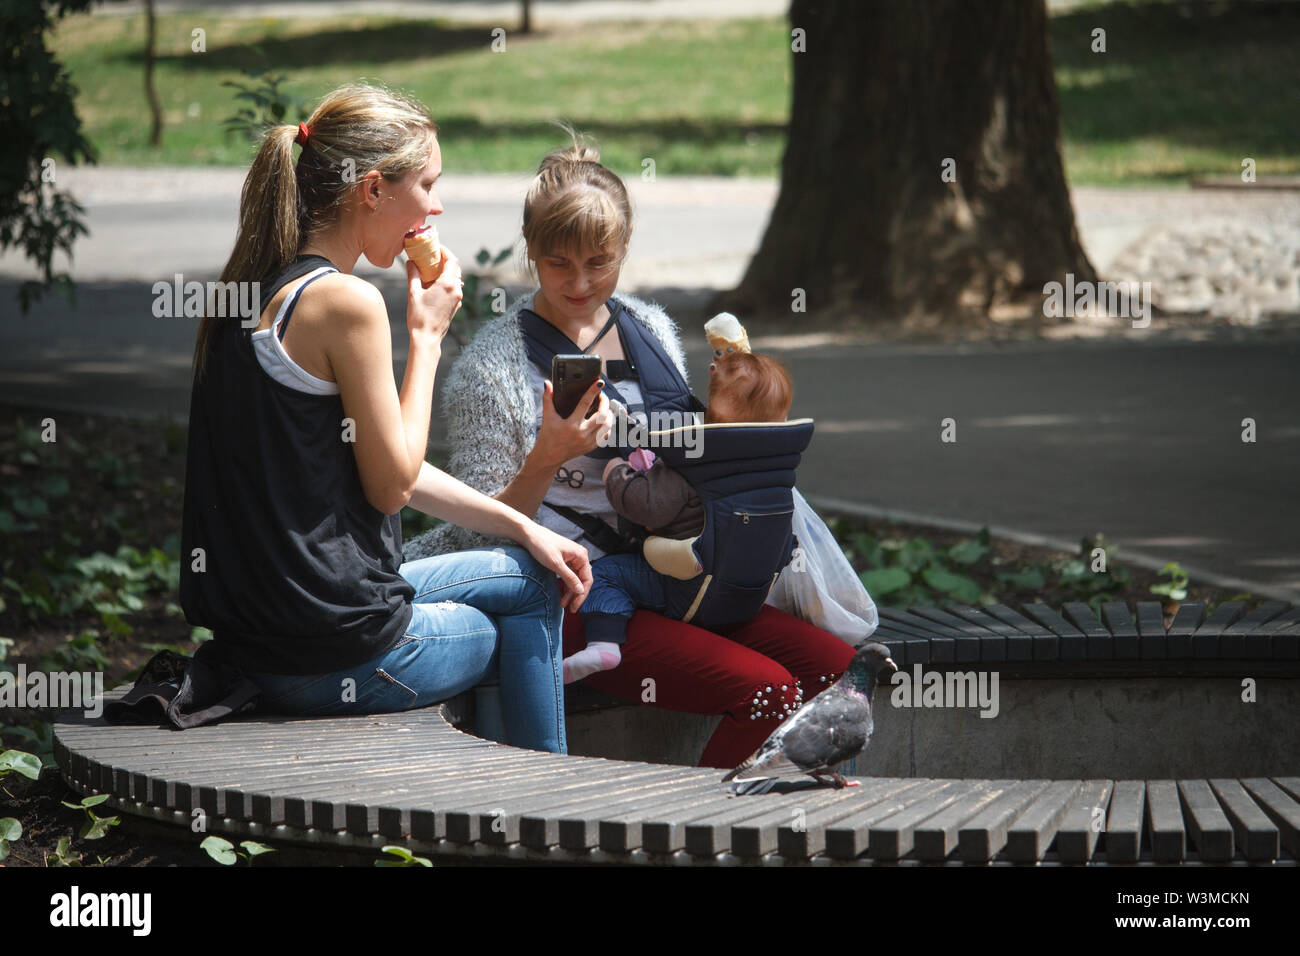 Kharkiv, Ukraine - June 30, 2019: A young mother with a baby in a backpack and a friend are relaxing on a bench in a city park - Stock Image